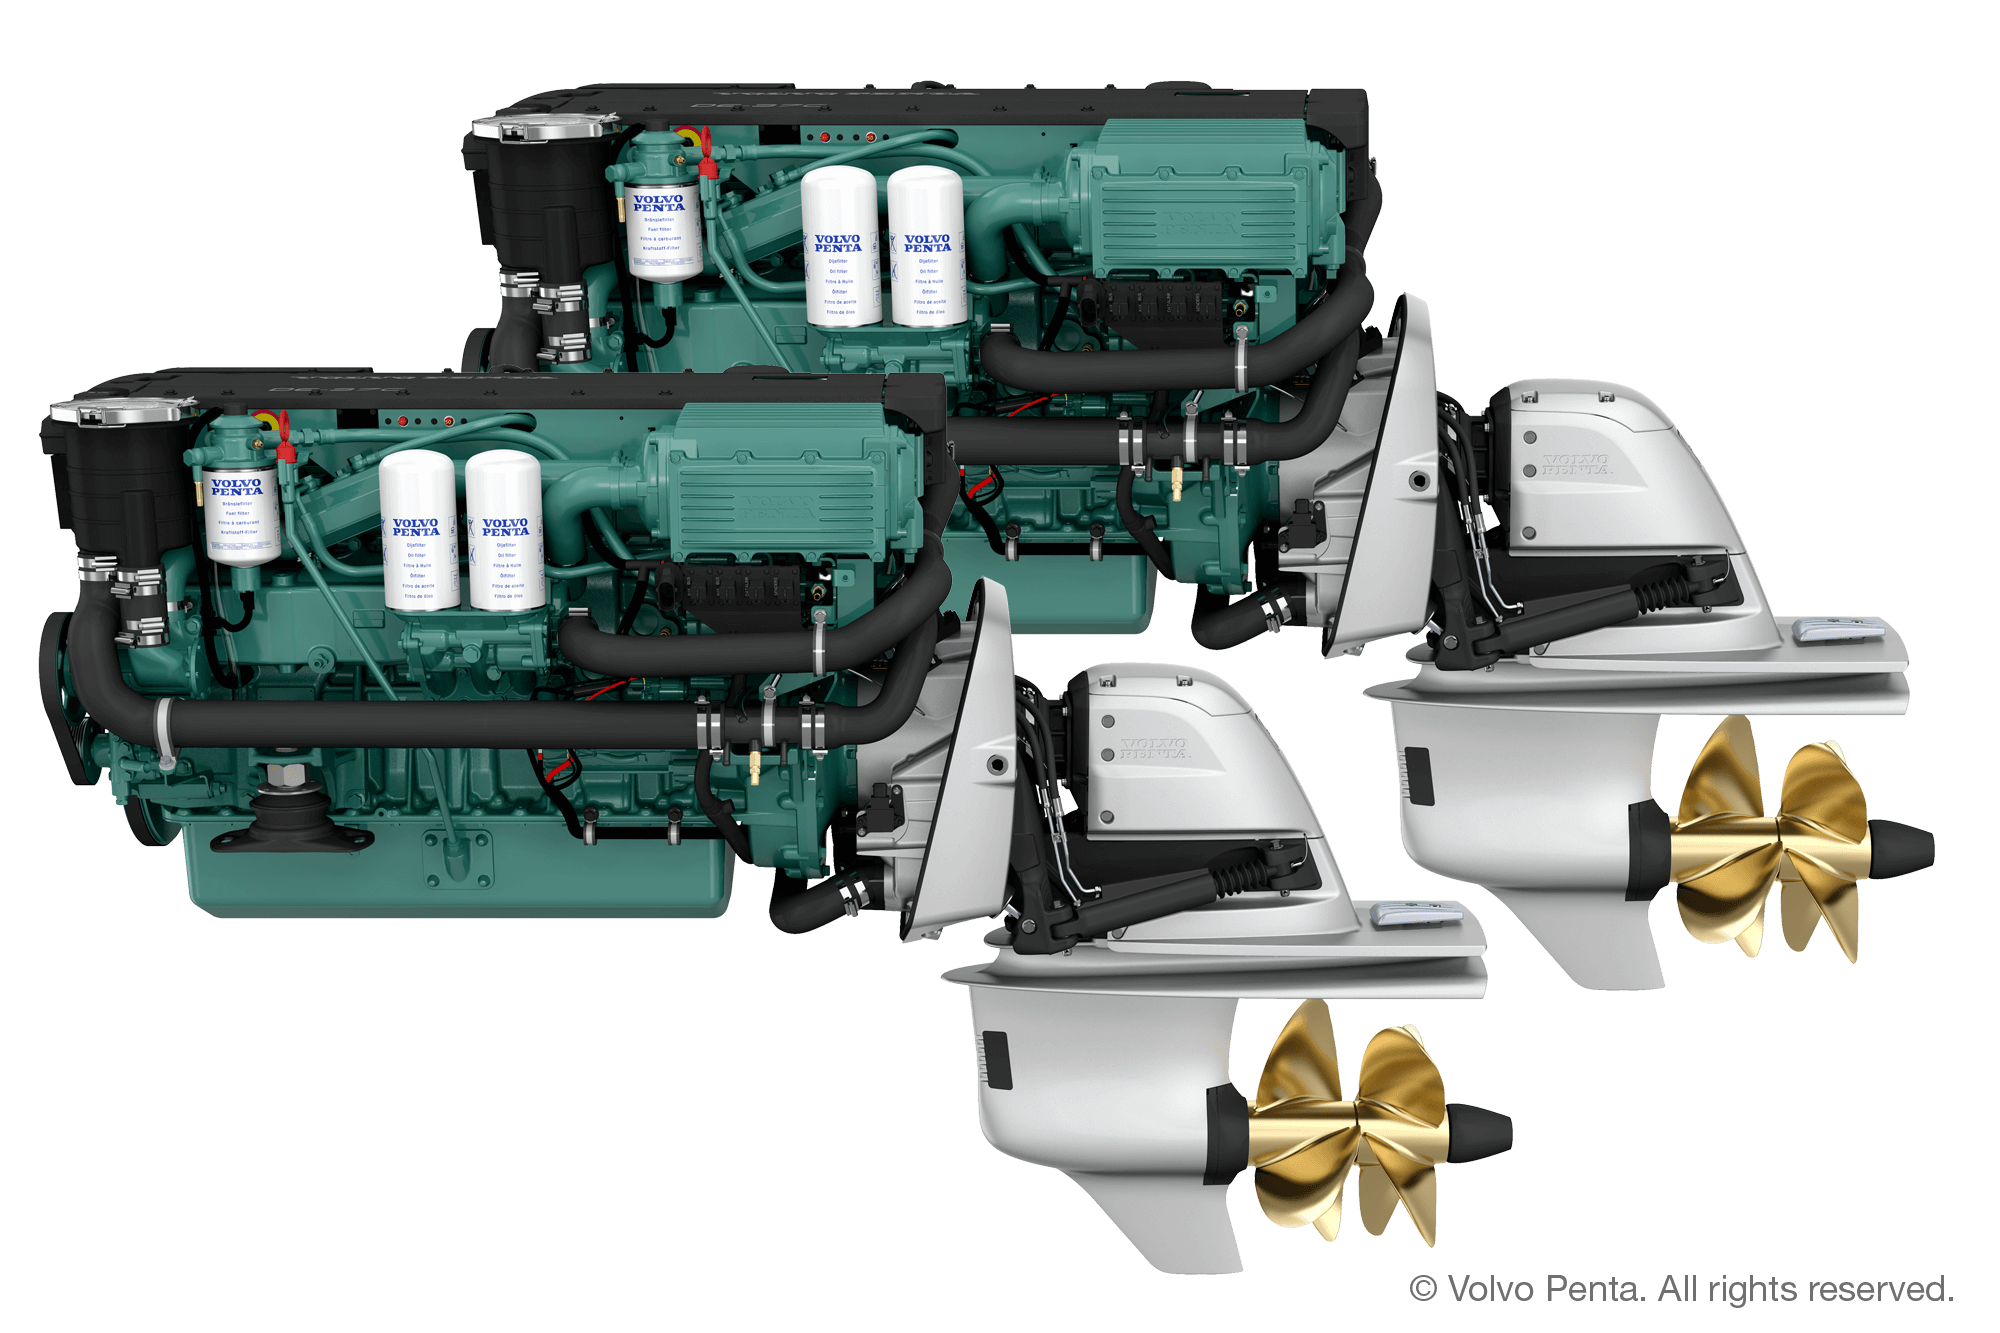 2 Volvo Penta D6-380 (380 hp) - DUOPROP STERN DRIVE with propeller G3